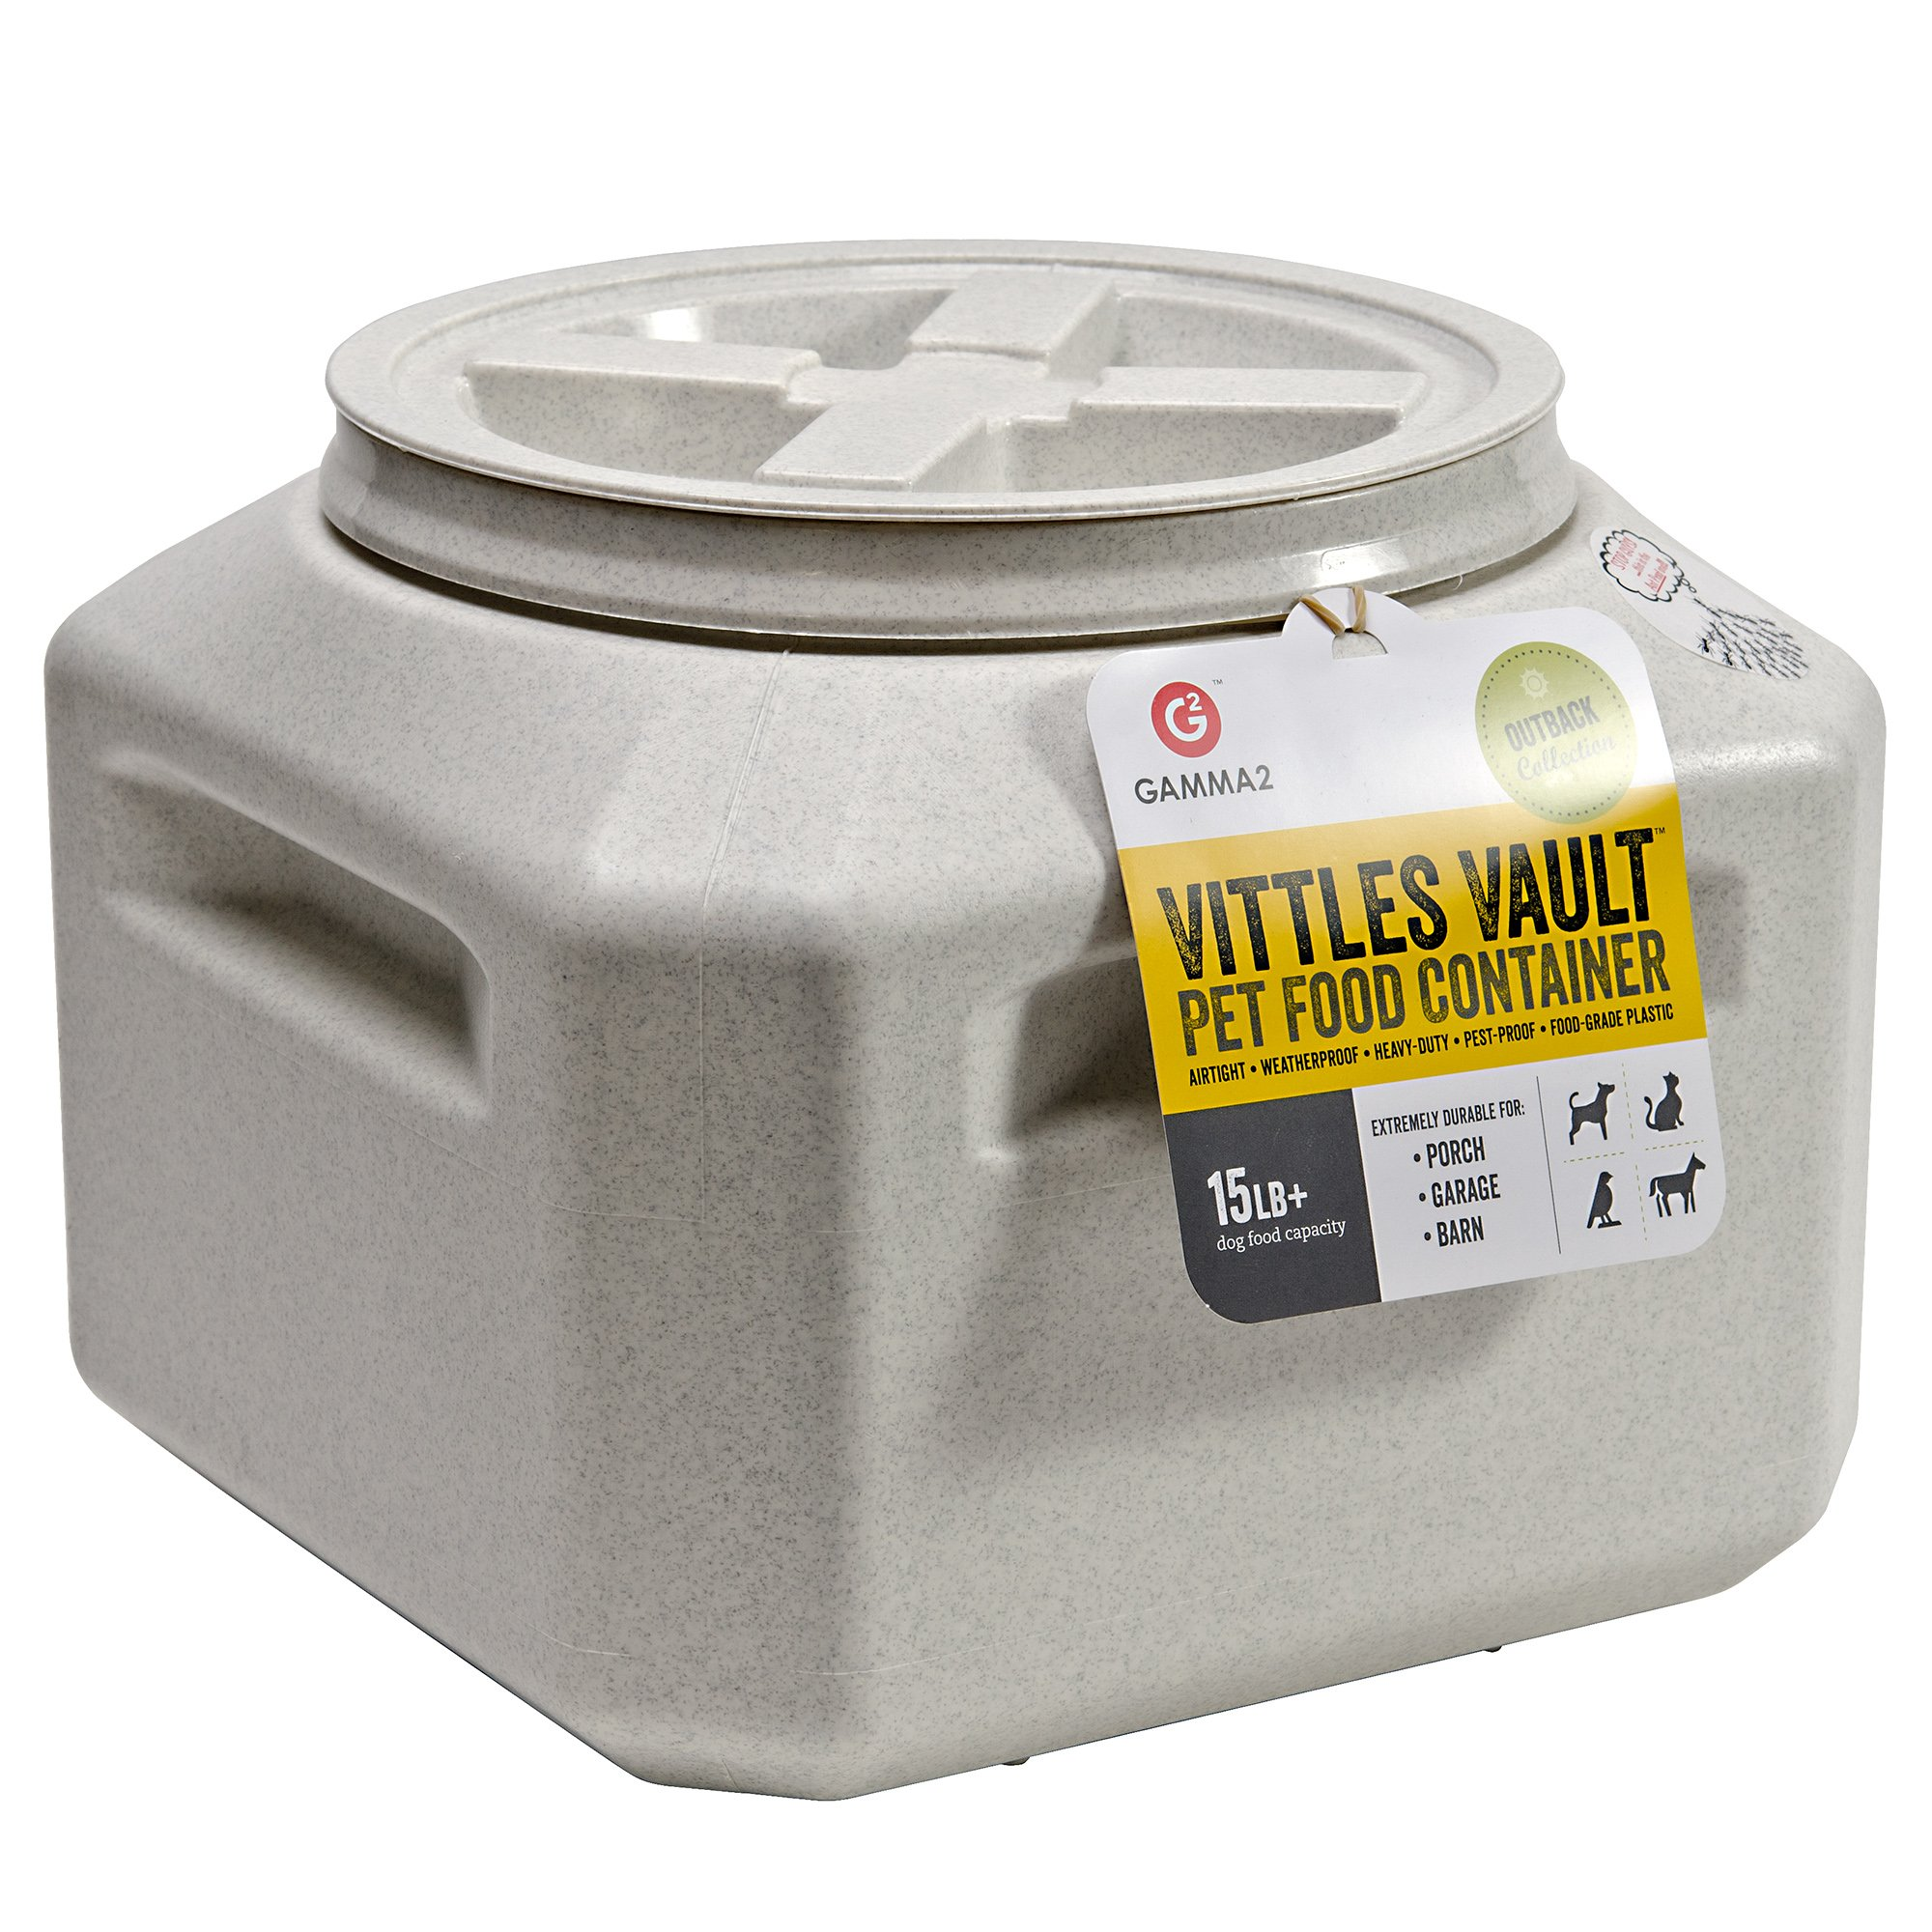 Gamma Vittles Vault Plus 15 Small Off White Pet Food